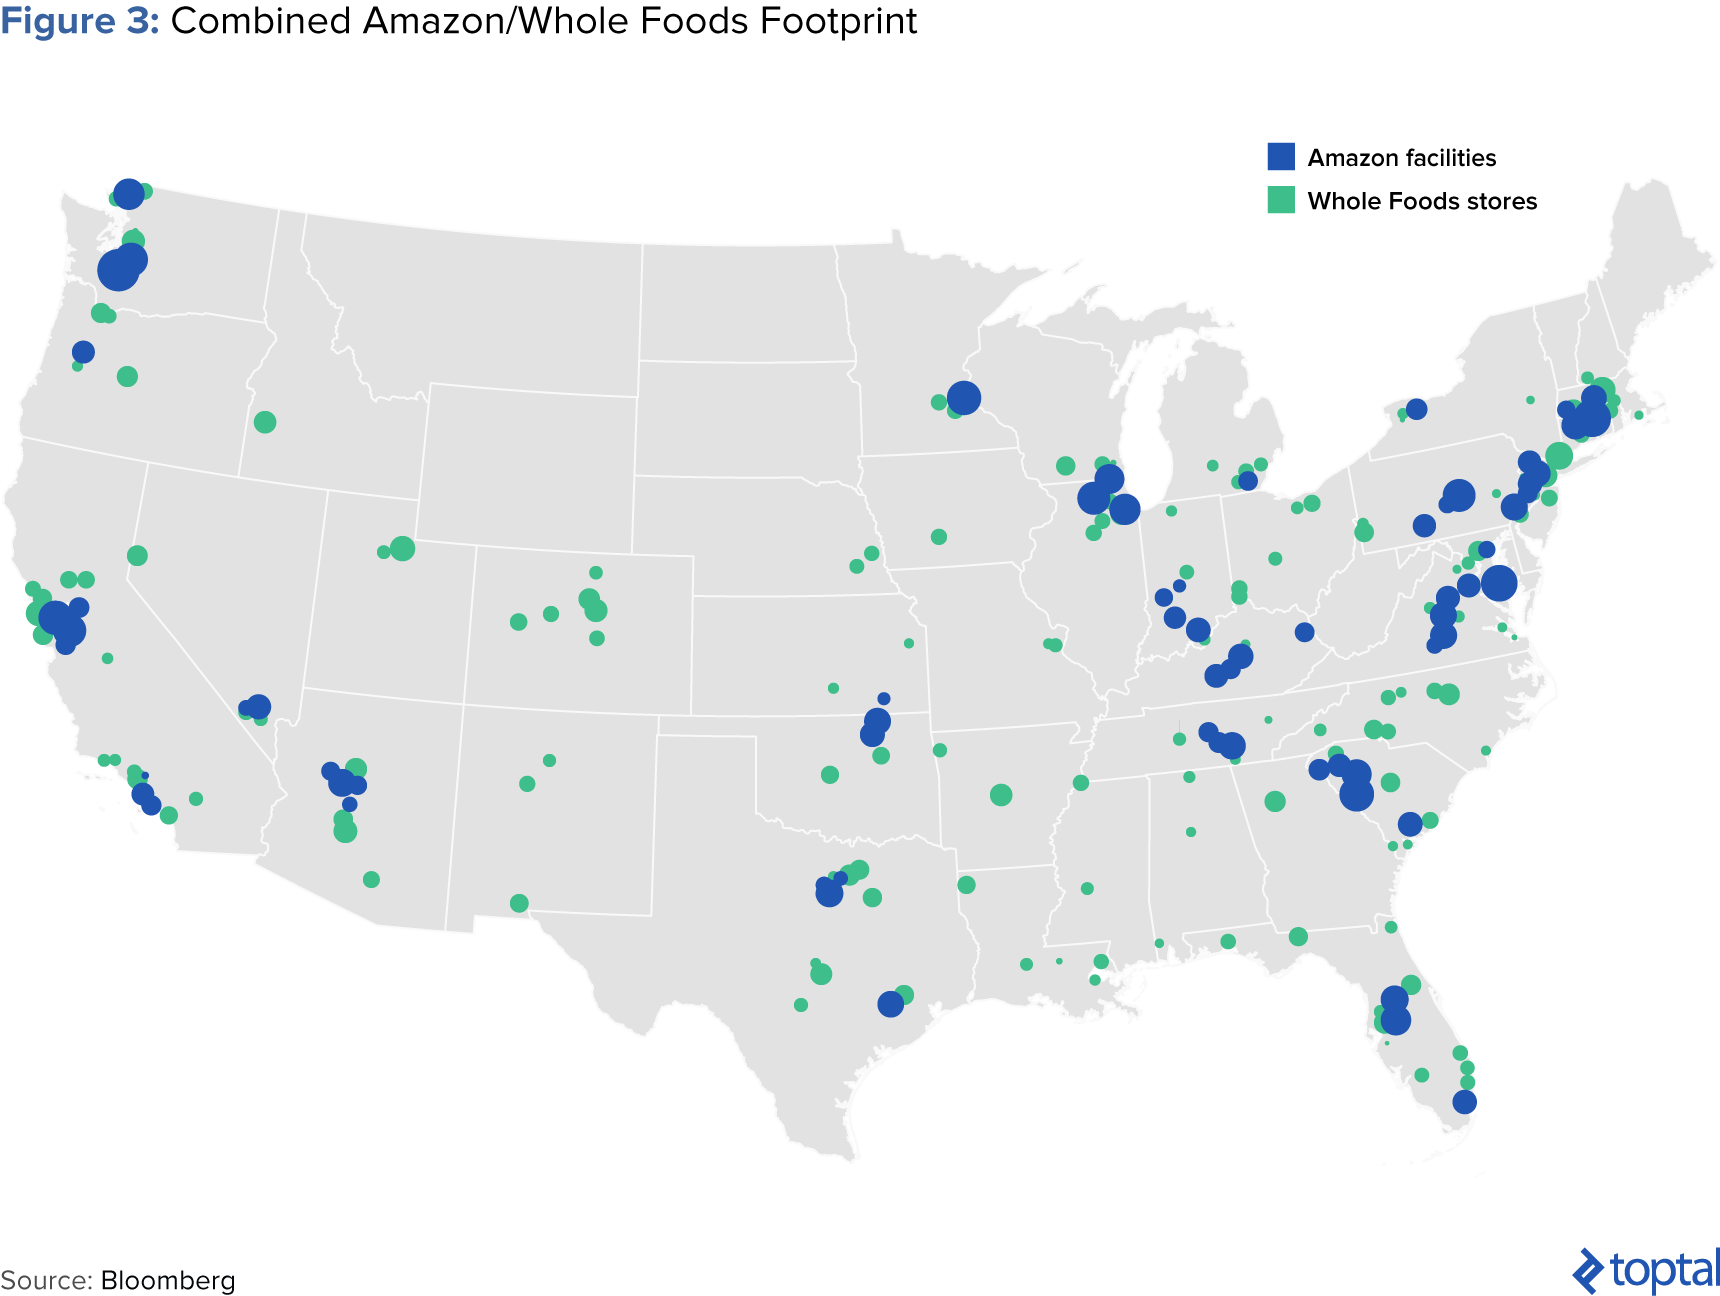 Figura 3: Huellas Combinadas de Amazon/Whole Foods